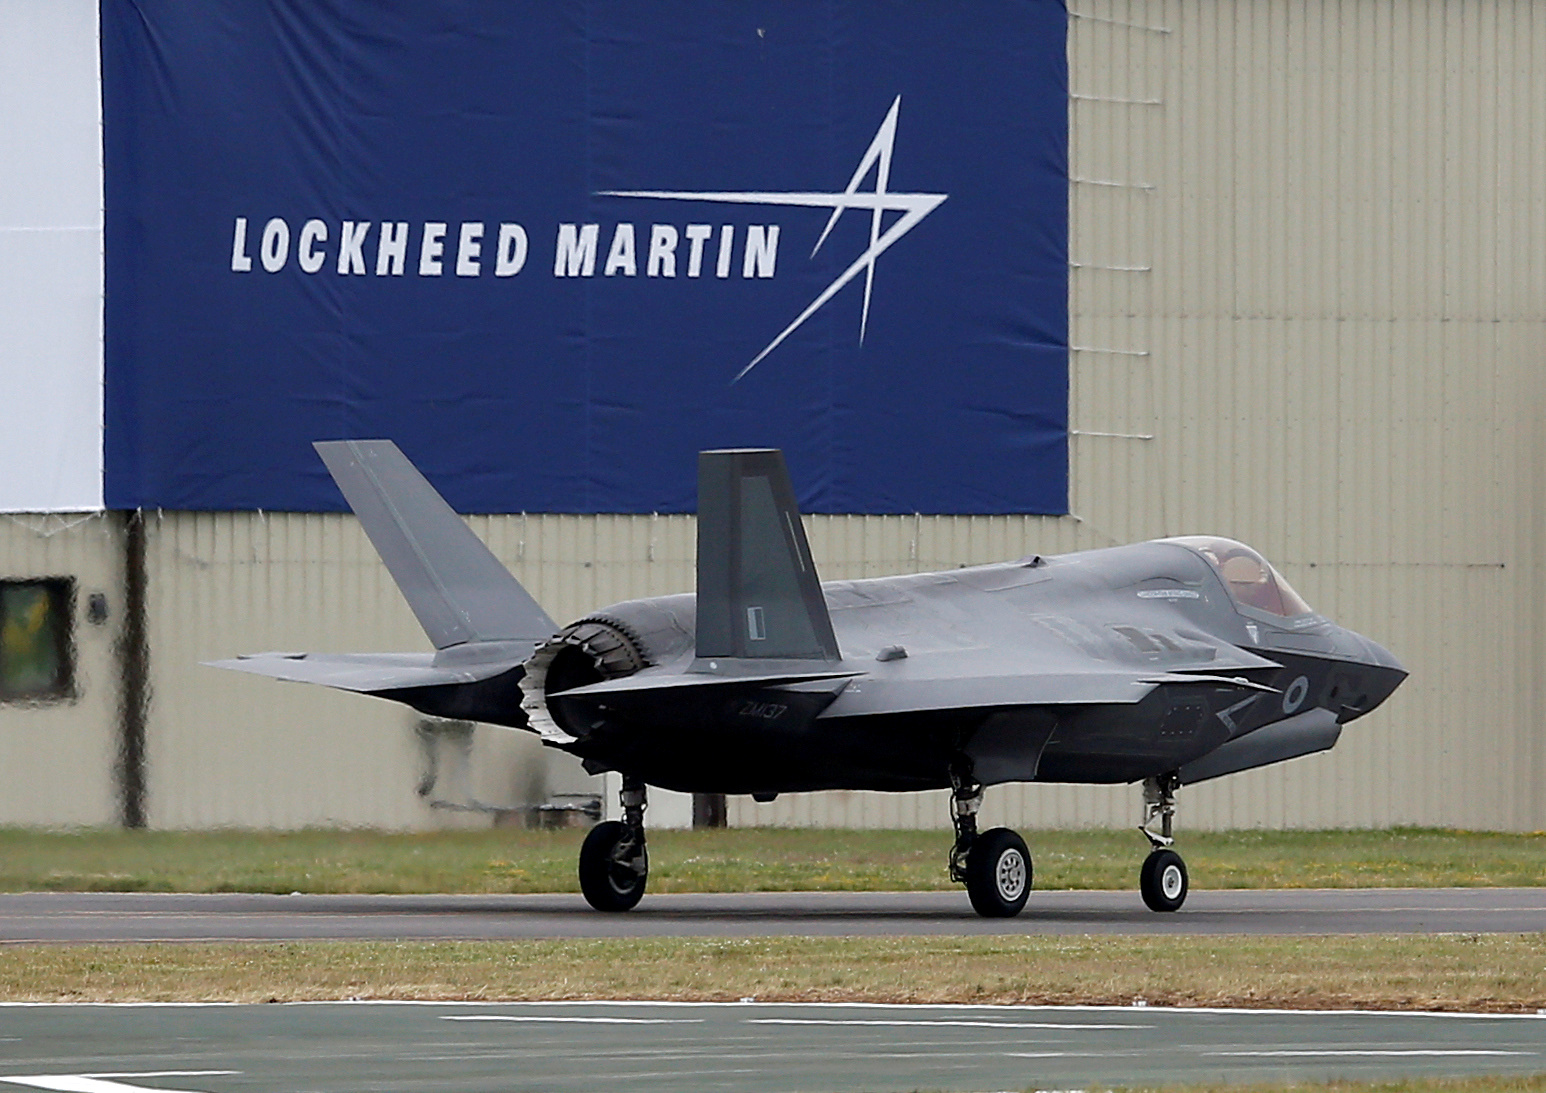 A RAF Lockheed Martin F-35B fighter jet taxis along a runway after landing at the Royal International Air Tattoo at Fairford, Britain July 8, 2016.  REUTERS/Peter Nicholls